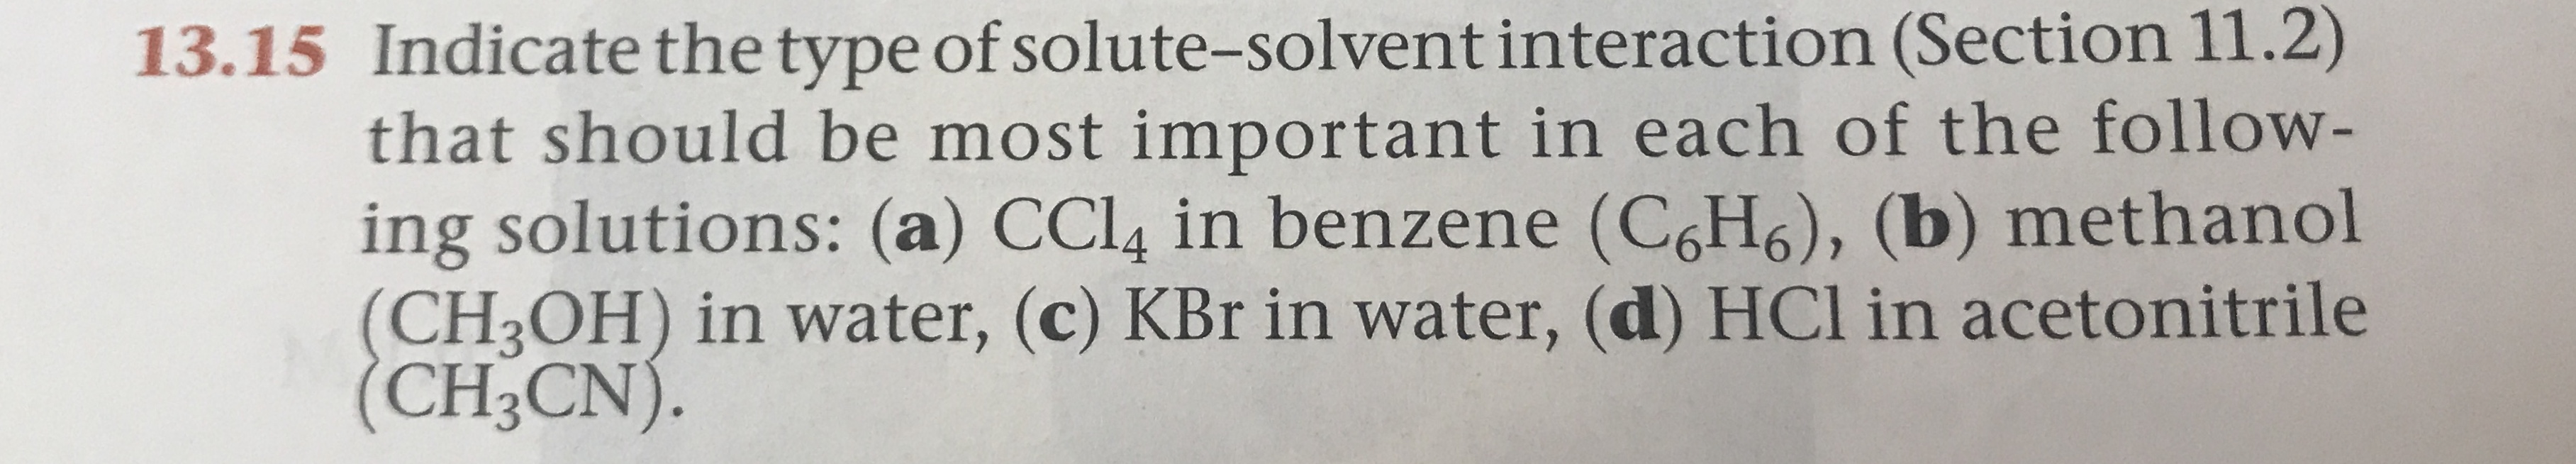 Indicate the type of solute-solvent interaction (Section 11.2) that should be most important in each of the follow- ing solutions: (a) CCL4 in benzene (C6H6), (b) methanol (CH3OH) in water, (c) KBr in water, (d) HCl in acetonitrile (CH3CN). 13.15